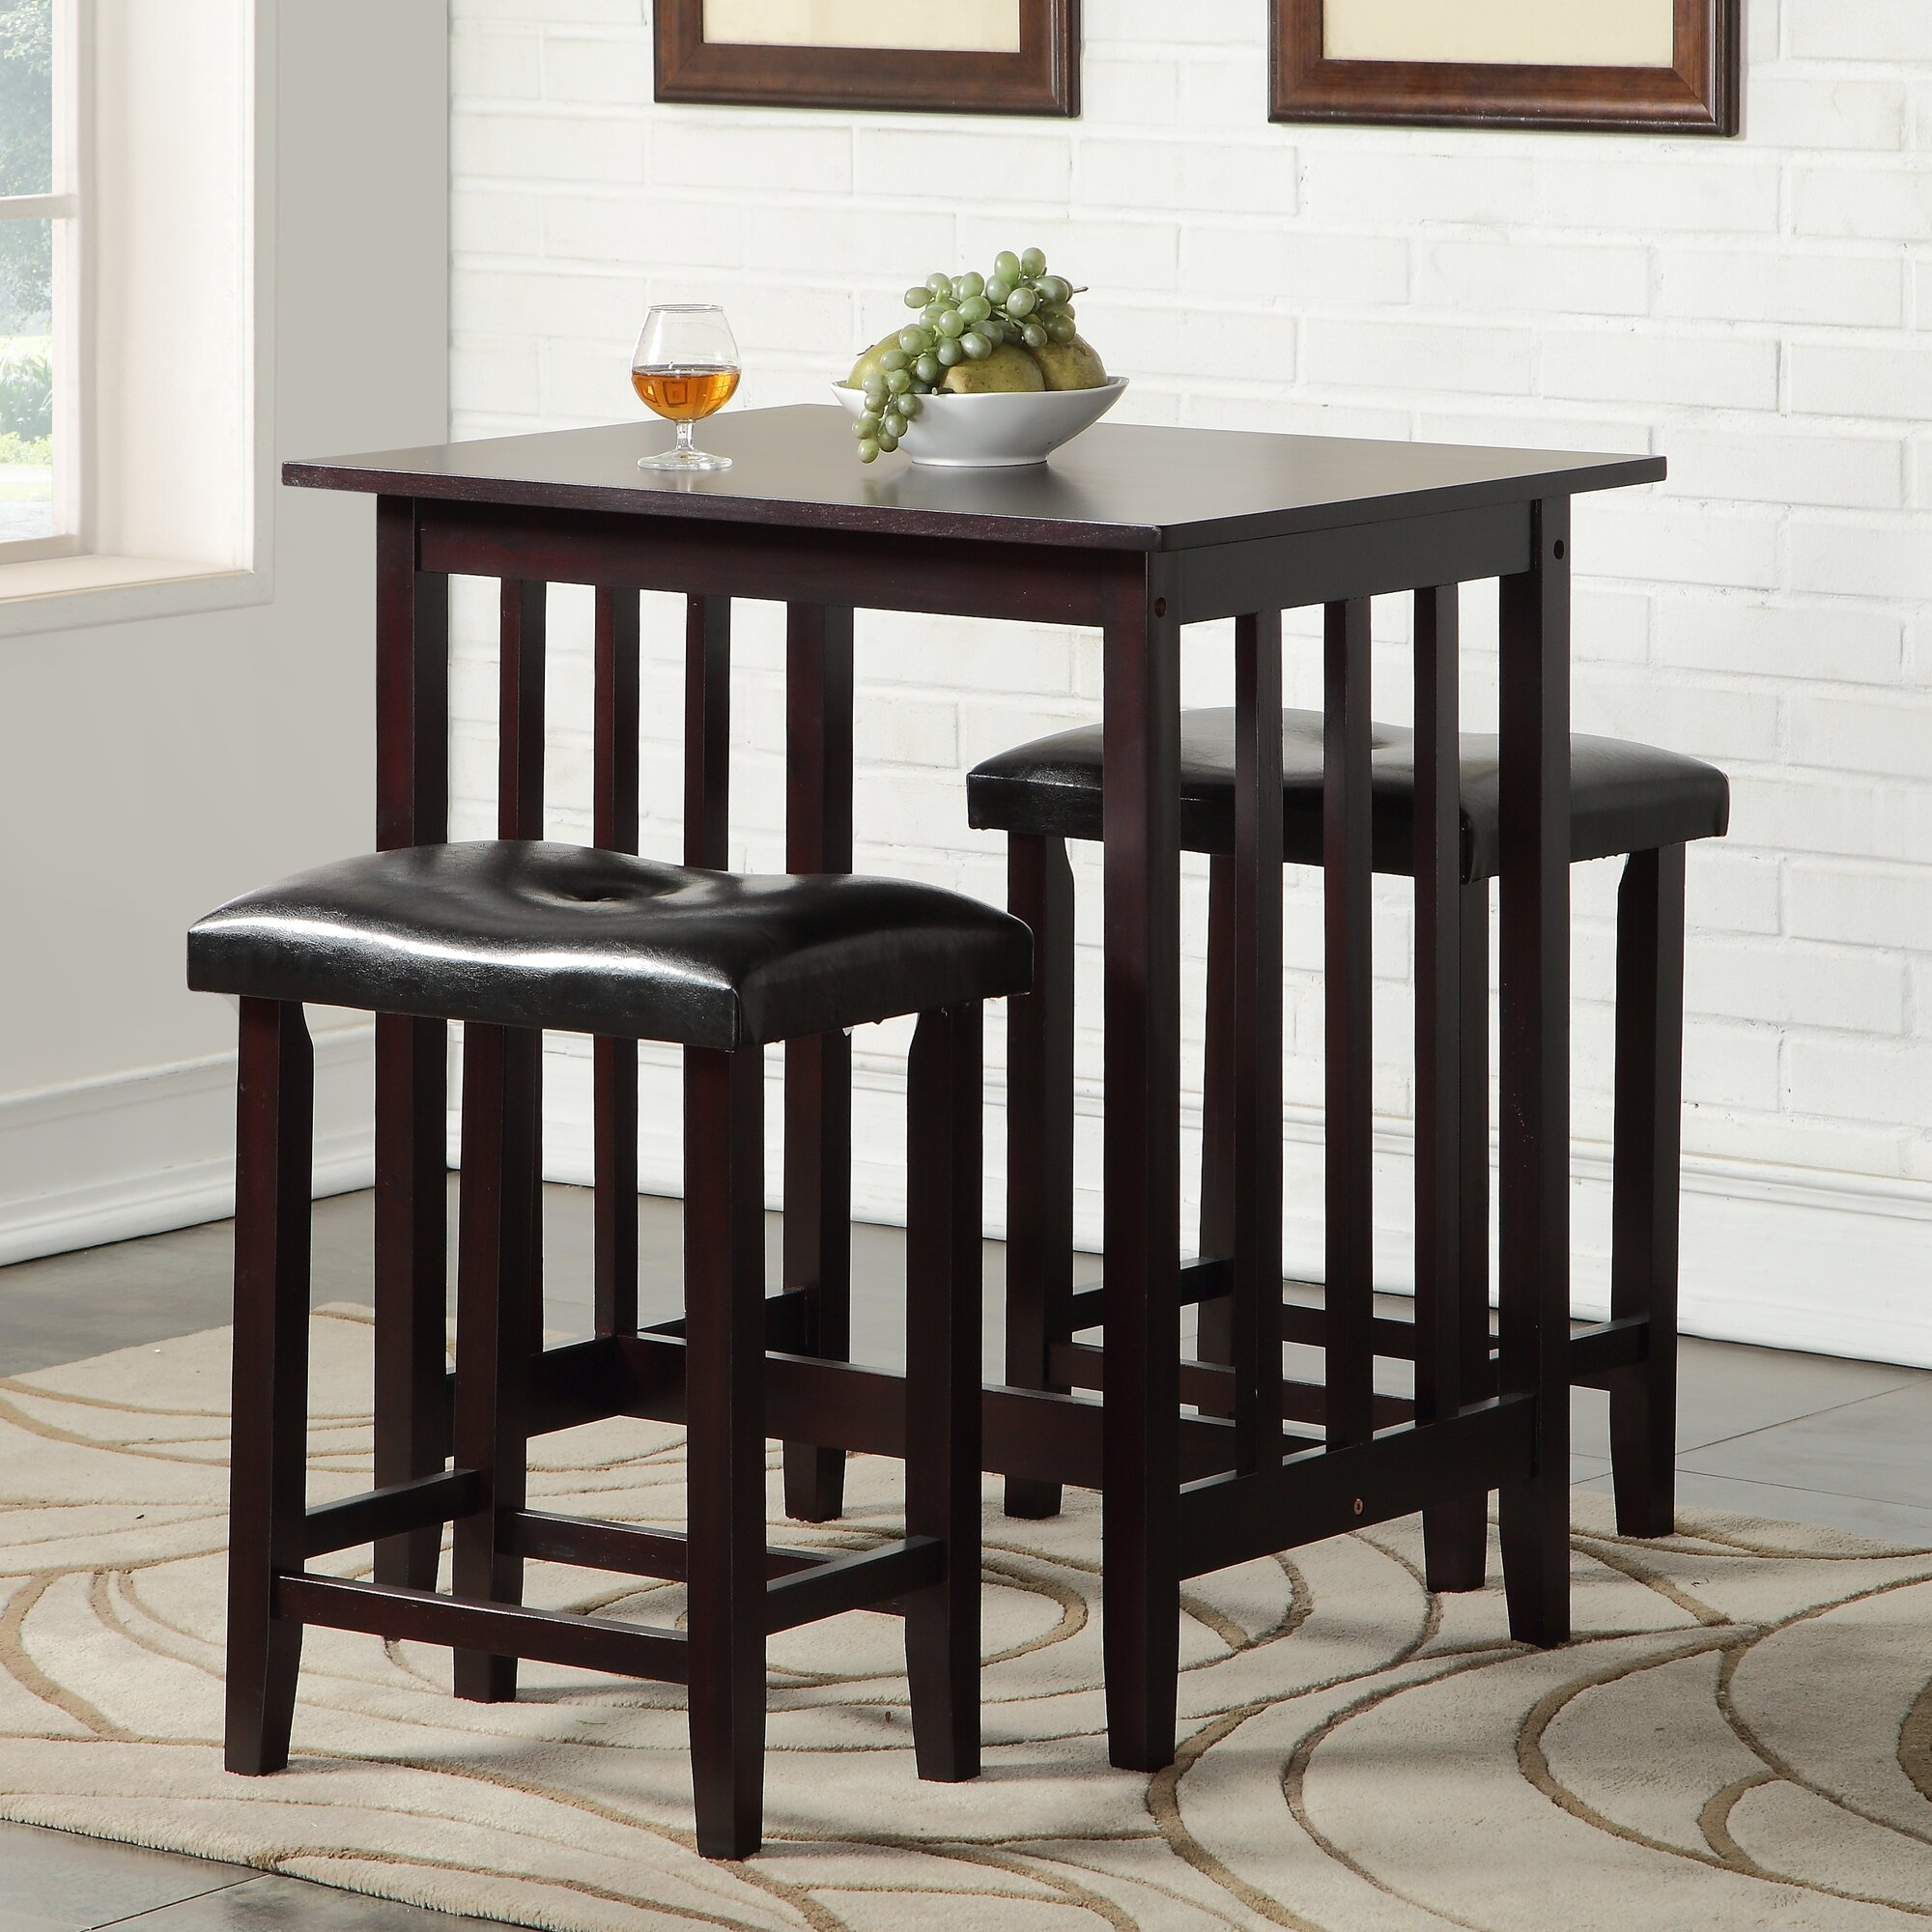 richland 3 piece counter height pub table set - Kitchen Bar Table Set